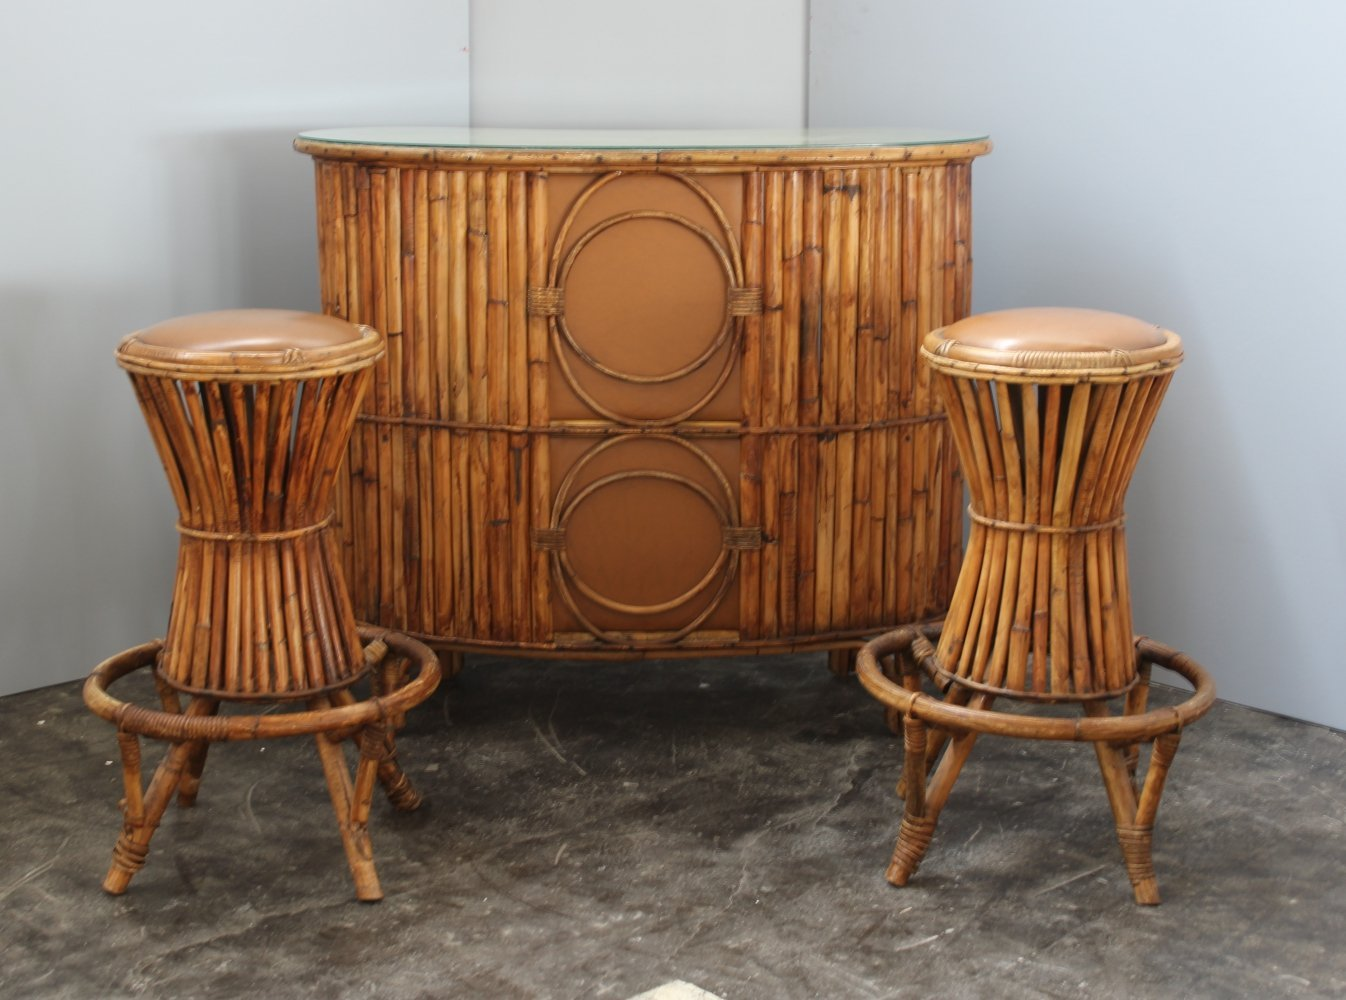 Italian midcentury Rattan bar with two shelves & two rattan stools